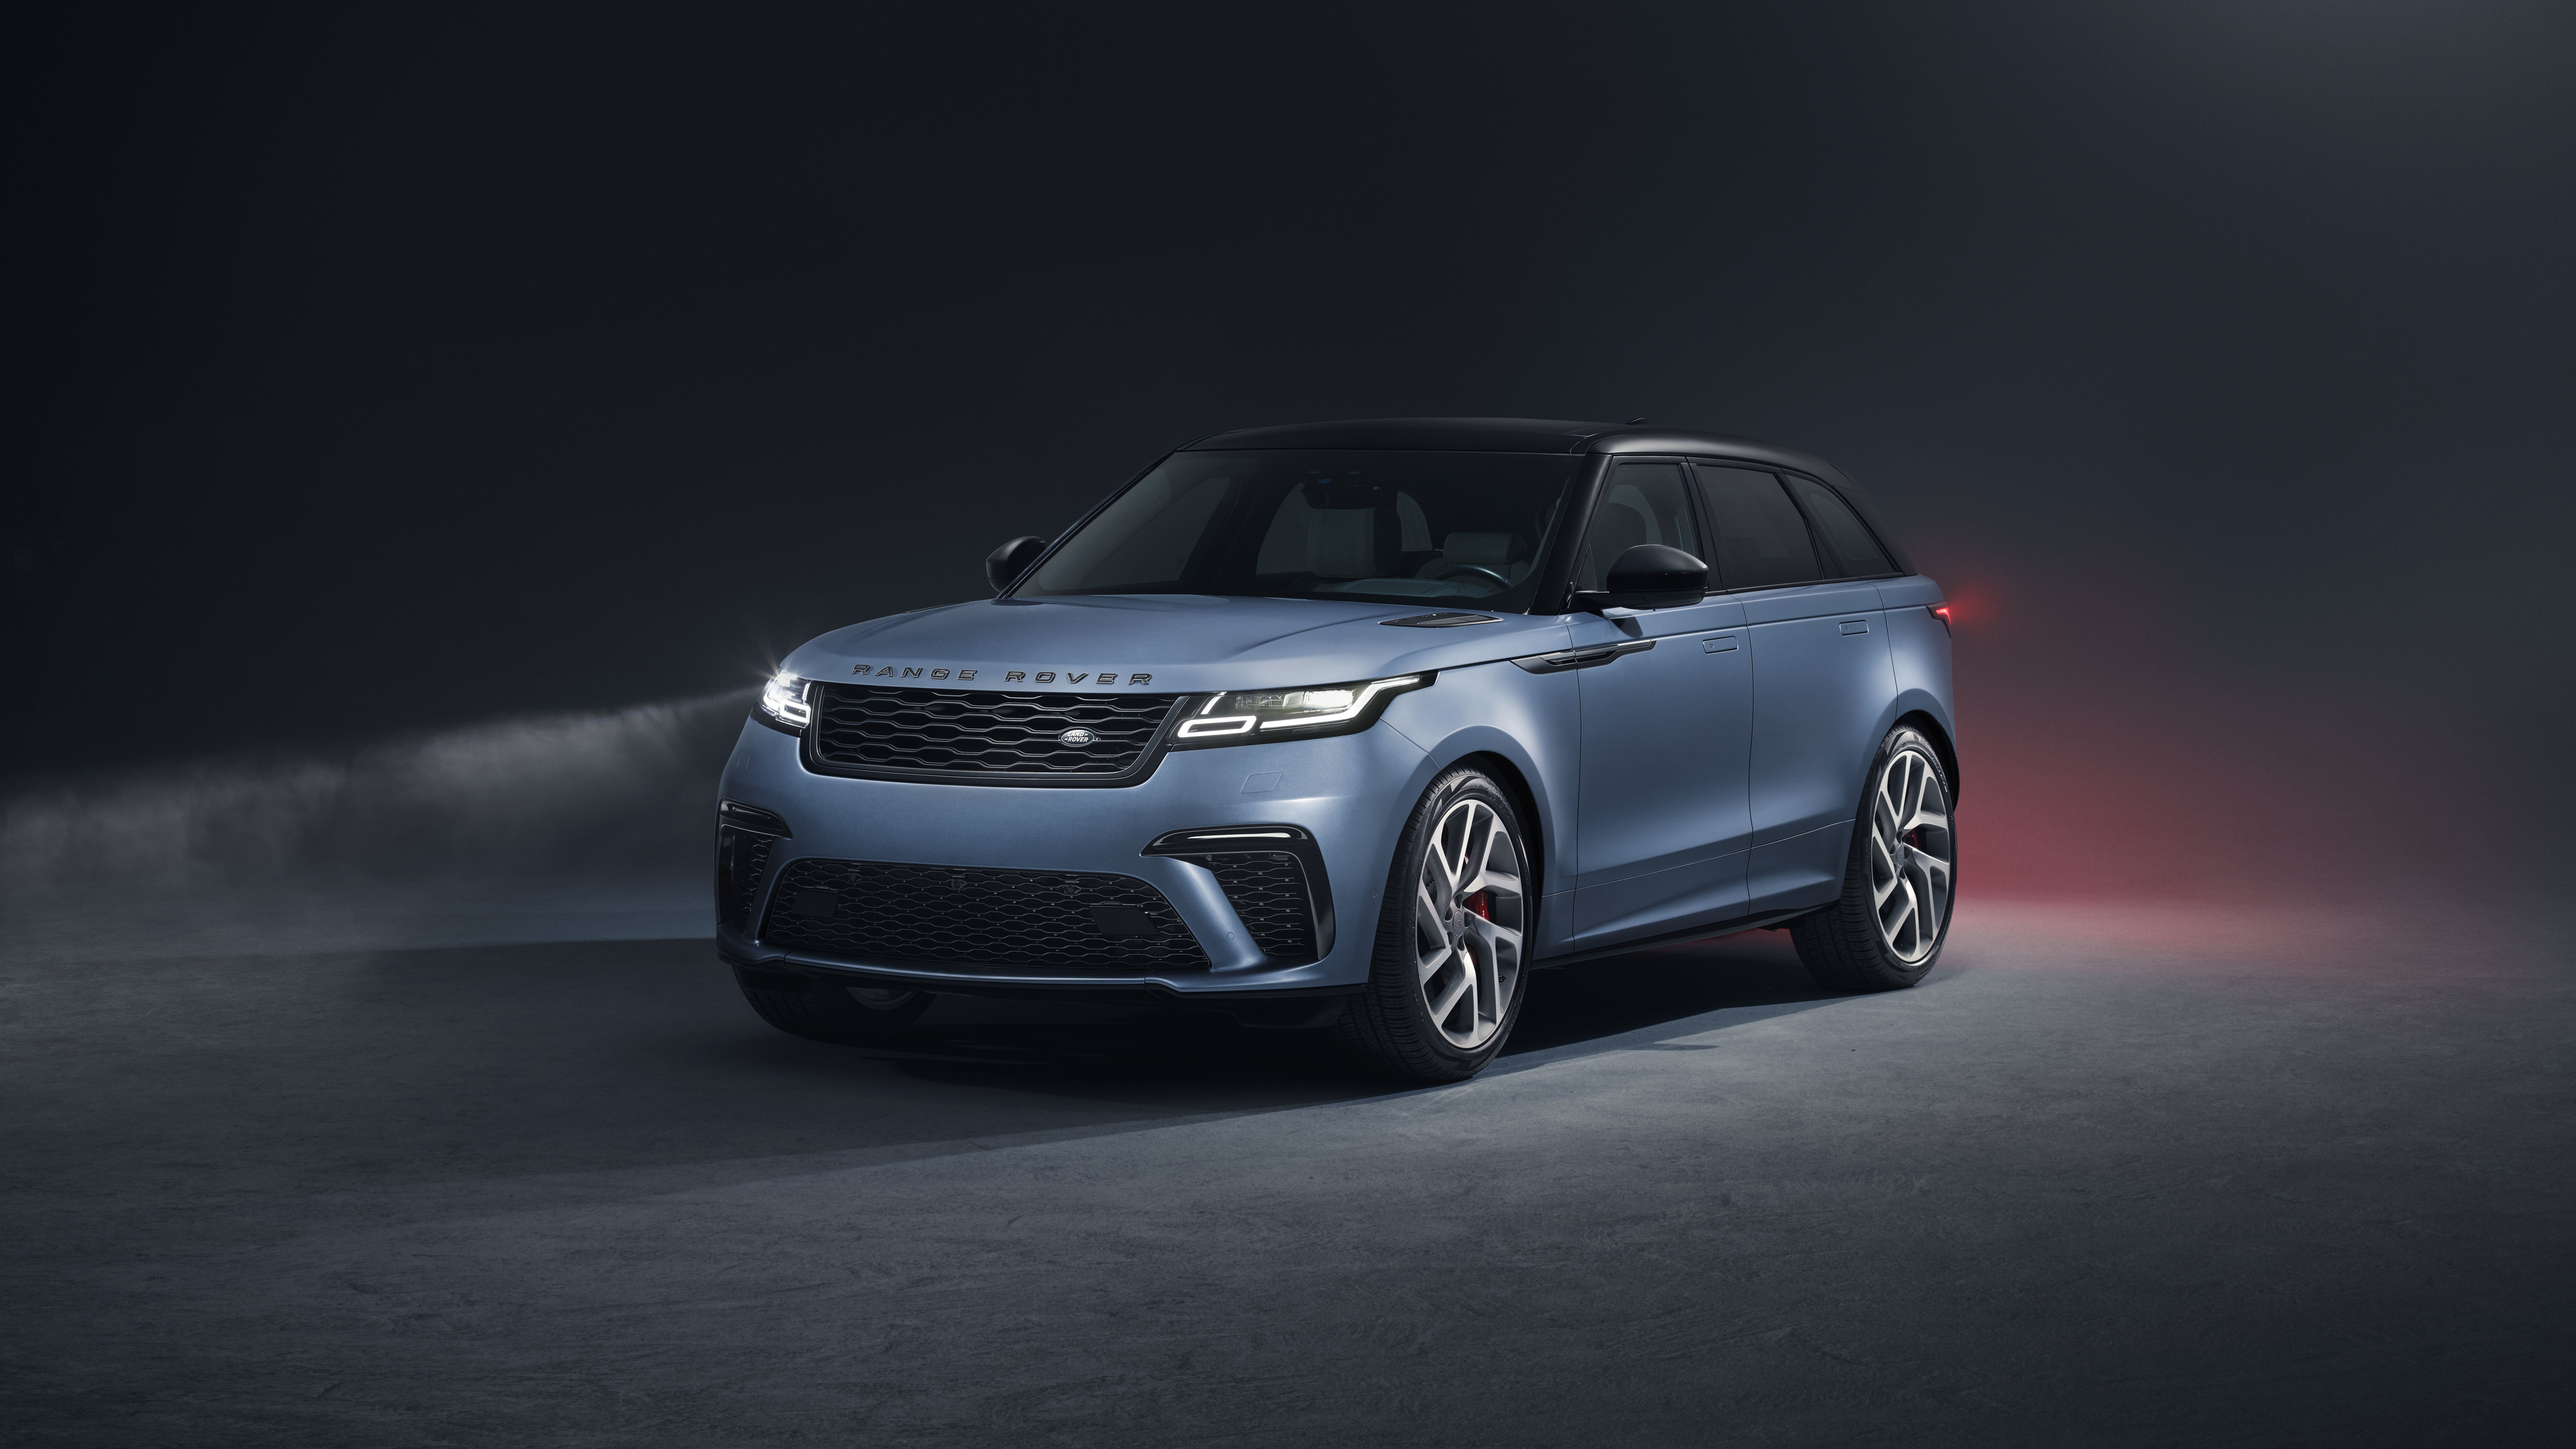 2019 land rover range rover velar svautobiography dynamic edition 4k 1550513102 - 2019 Land Rover Range Rover Velar SVAutobiography Dynamic Edition 4k - range rover wallpapers, range rover svautobiography wallpapers, hd-wallpapers, 8k wallpapers, 5k wallpapers, 4k-wallpapers, 2019 cars wallpapers, 10k wallpapers